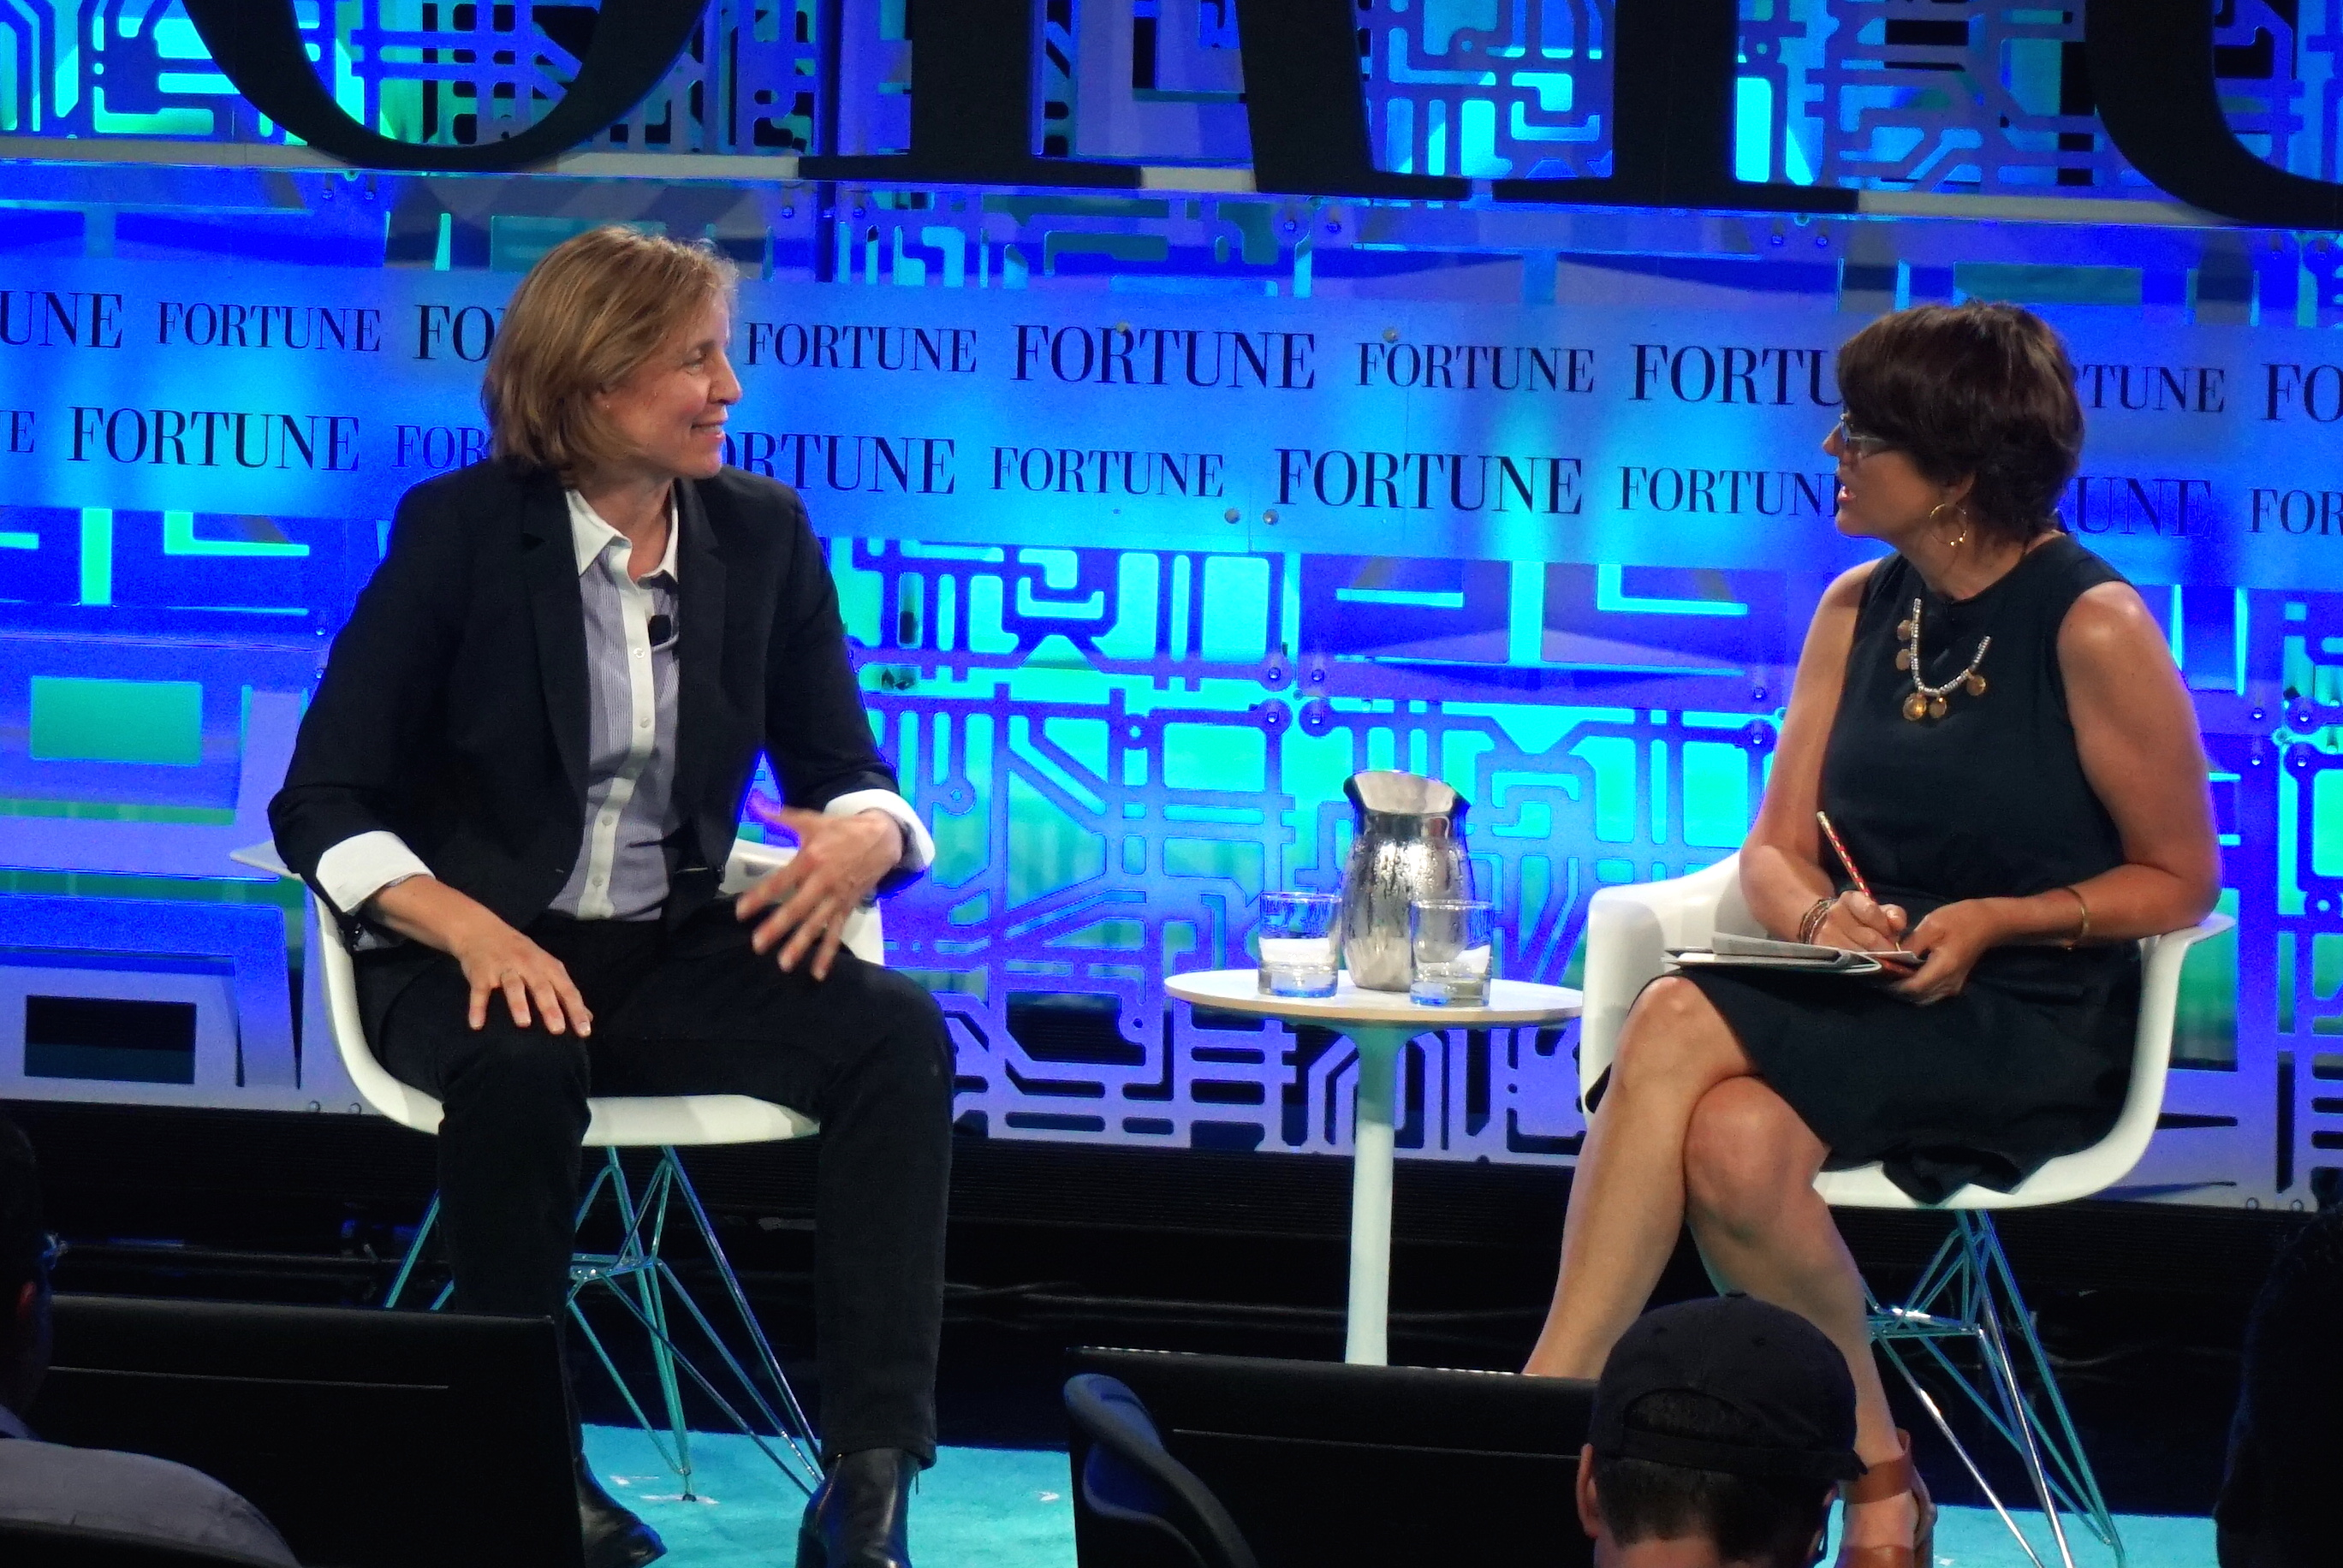 White House CTO Megan Smith, onstage at Fortune's Brainstorm Tech conference speaking with author Kelly Corrigan (right).